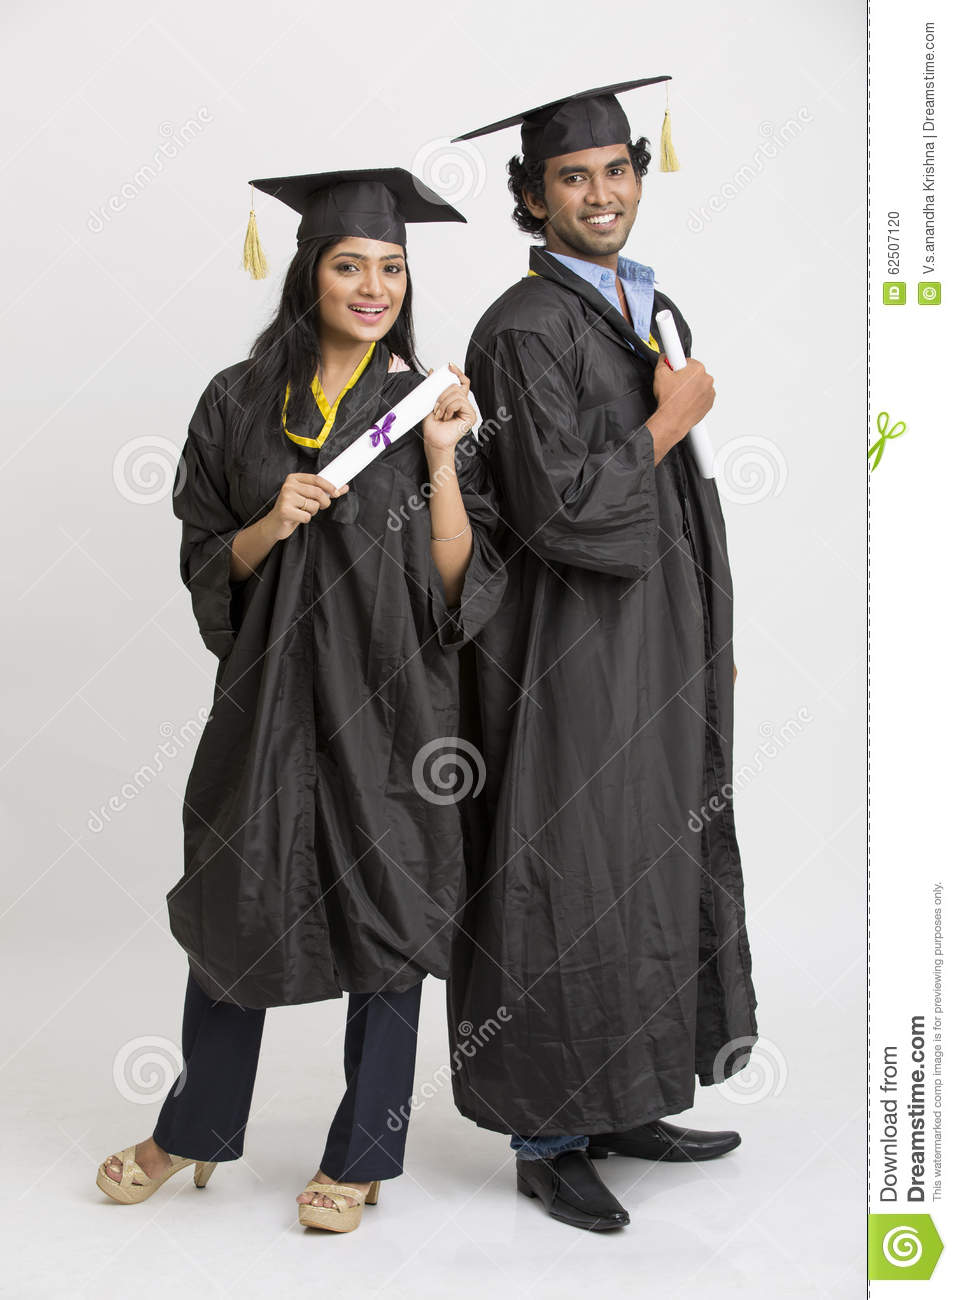 Cheerful Indian College Graduates Wearing Cap And Gown Holding ...